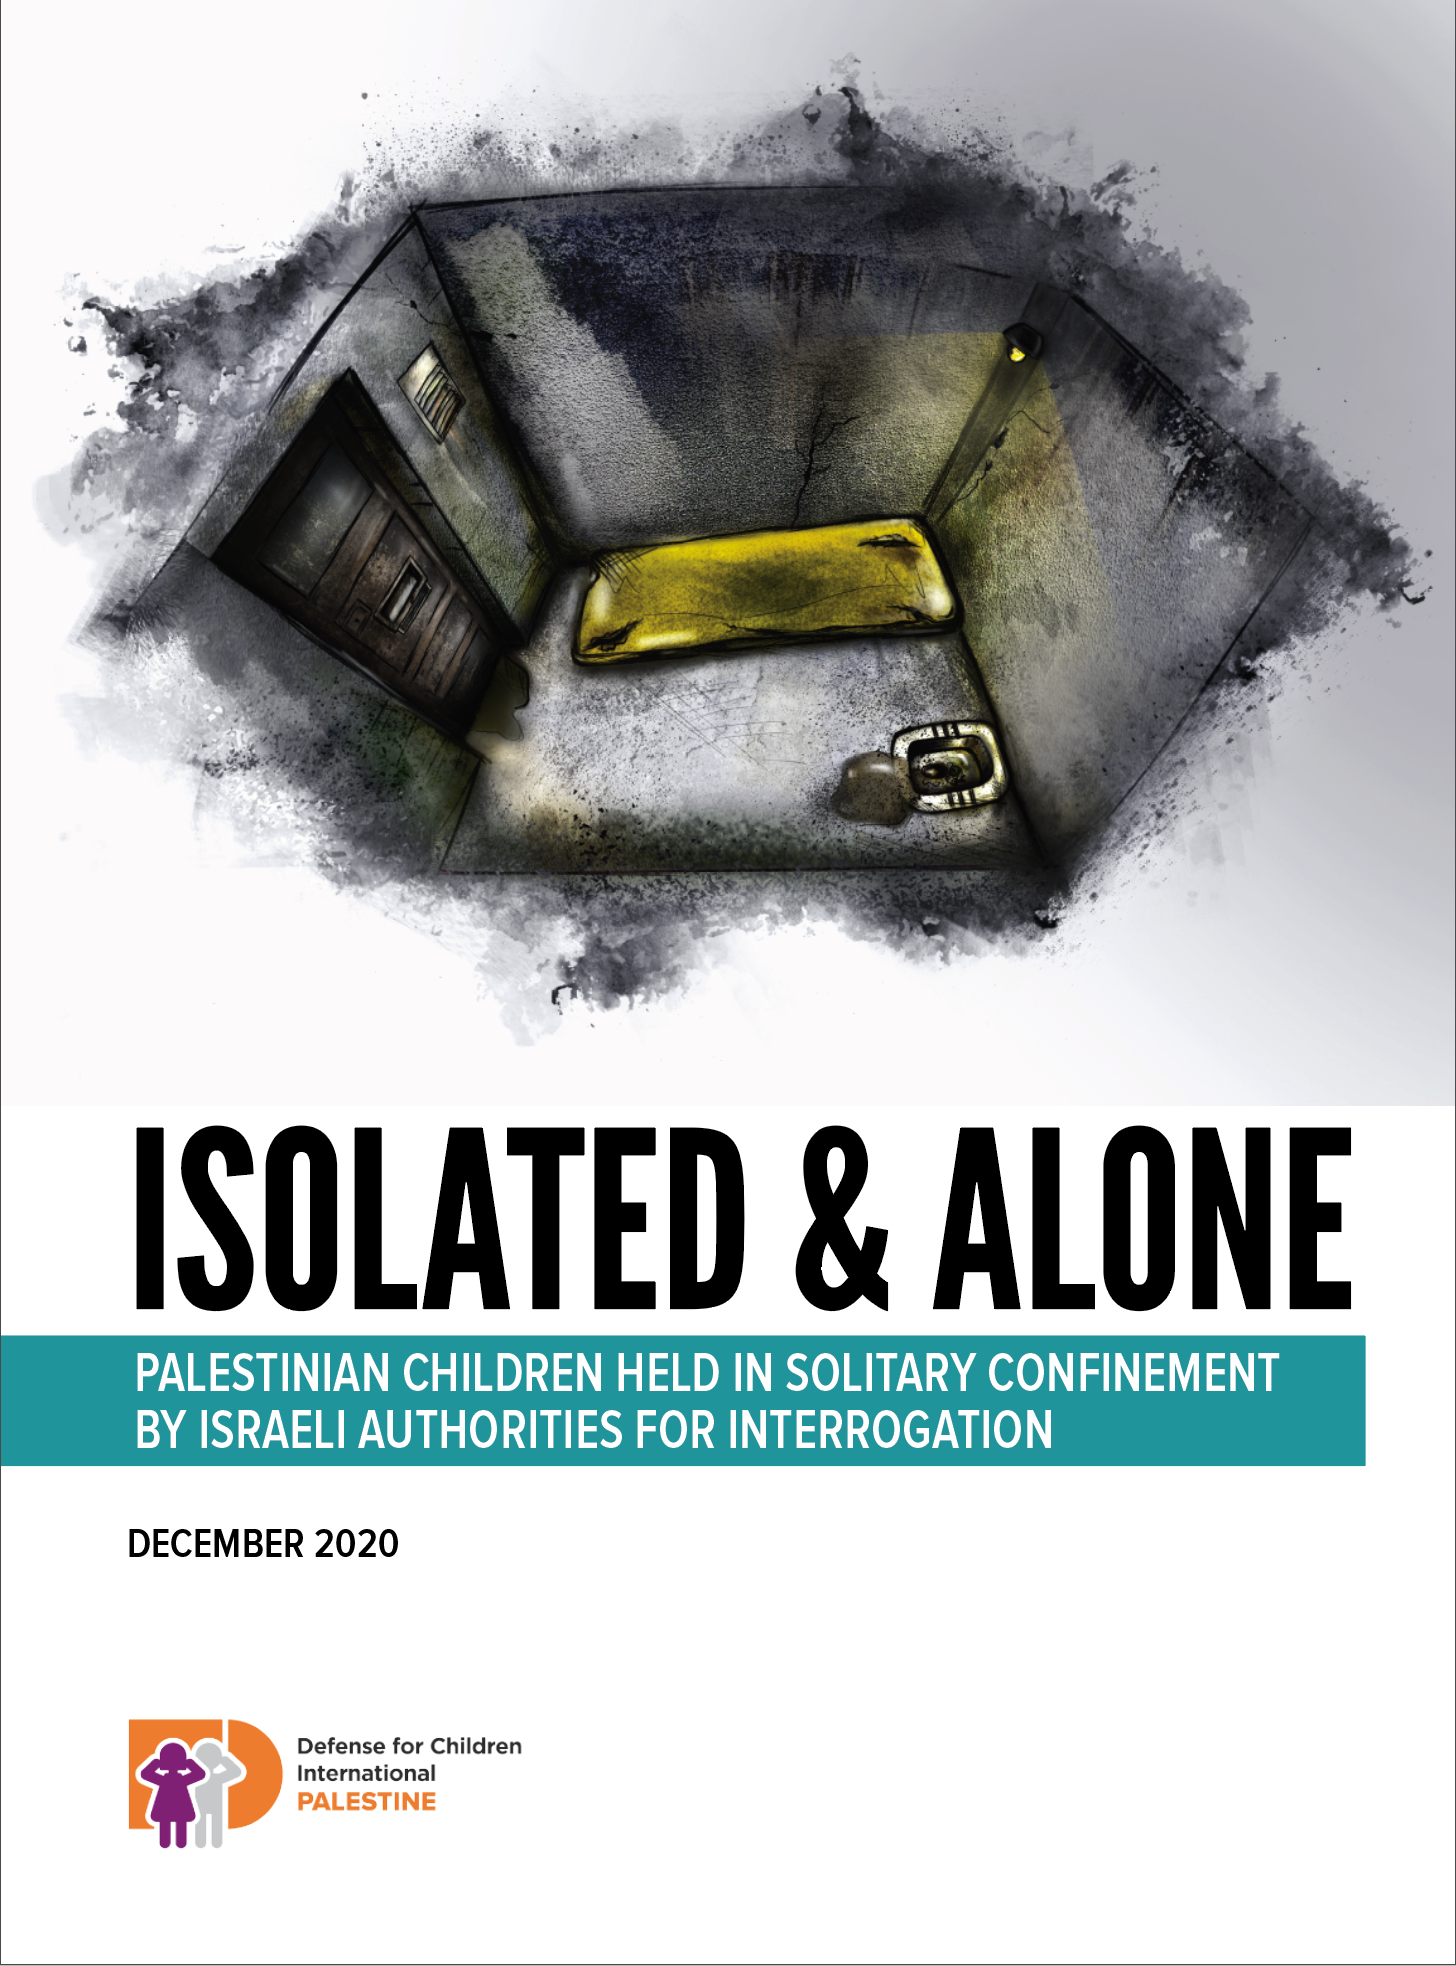 Report: Isolated and Alone